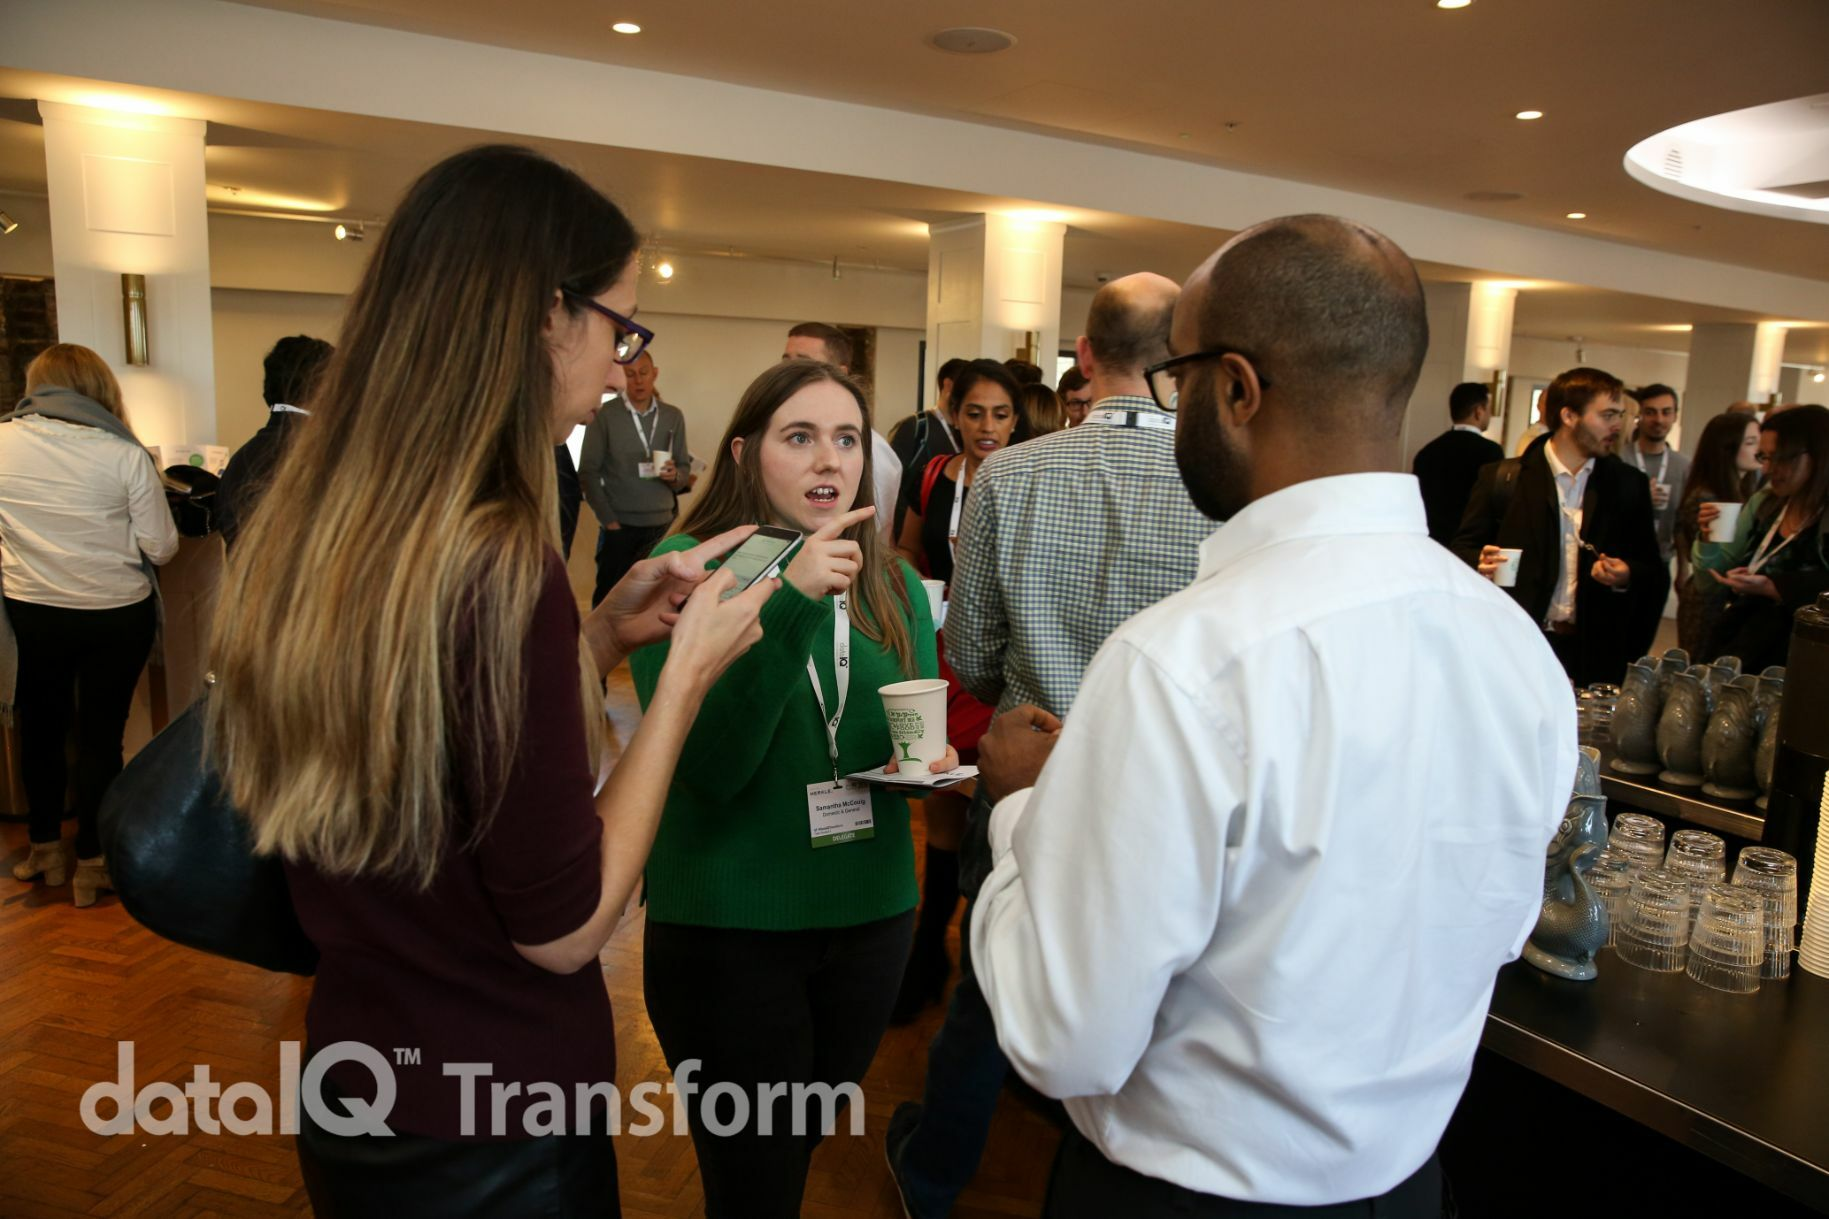 DataIQ Transform 2019 Image 36